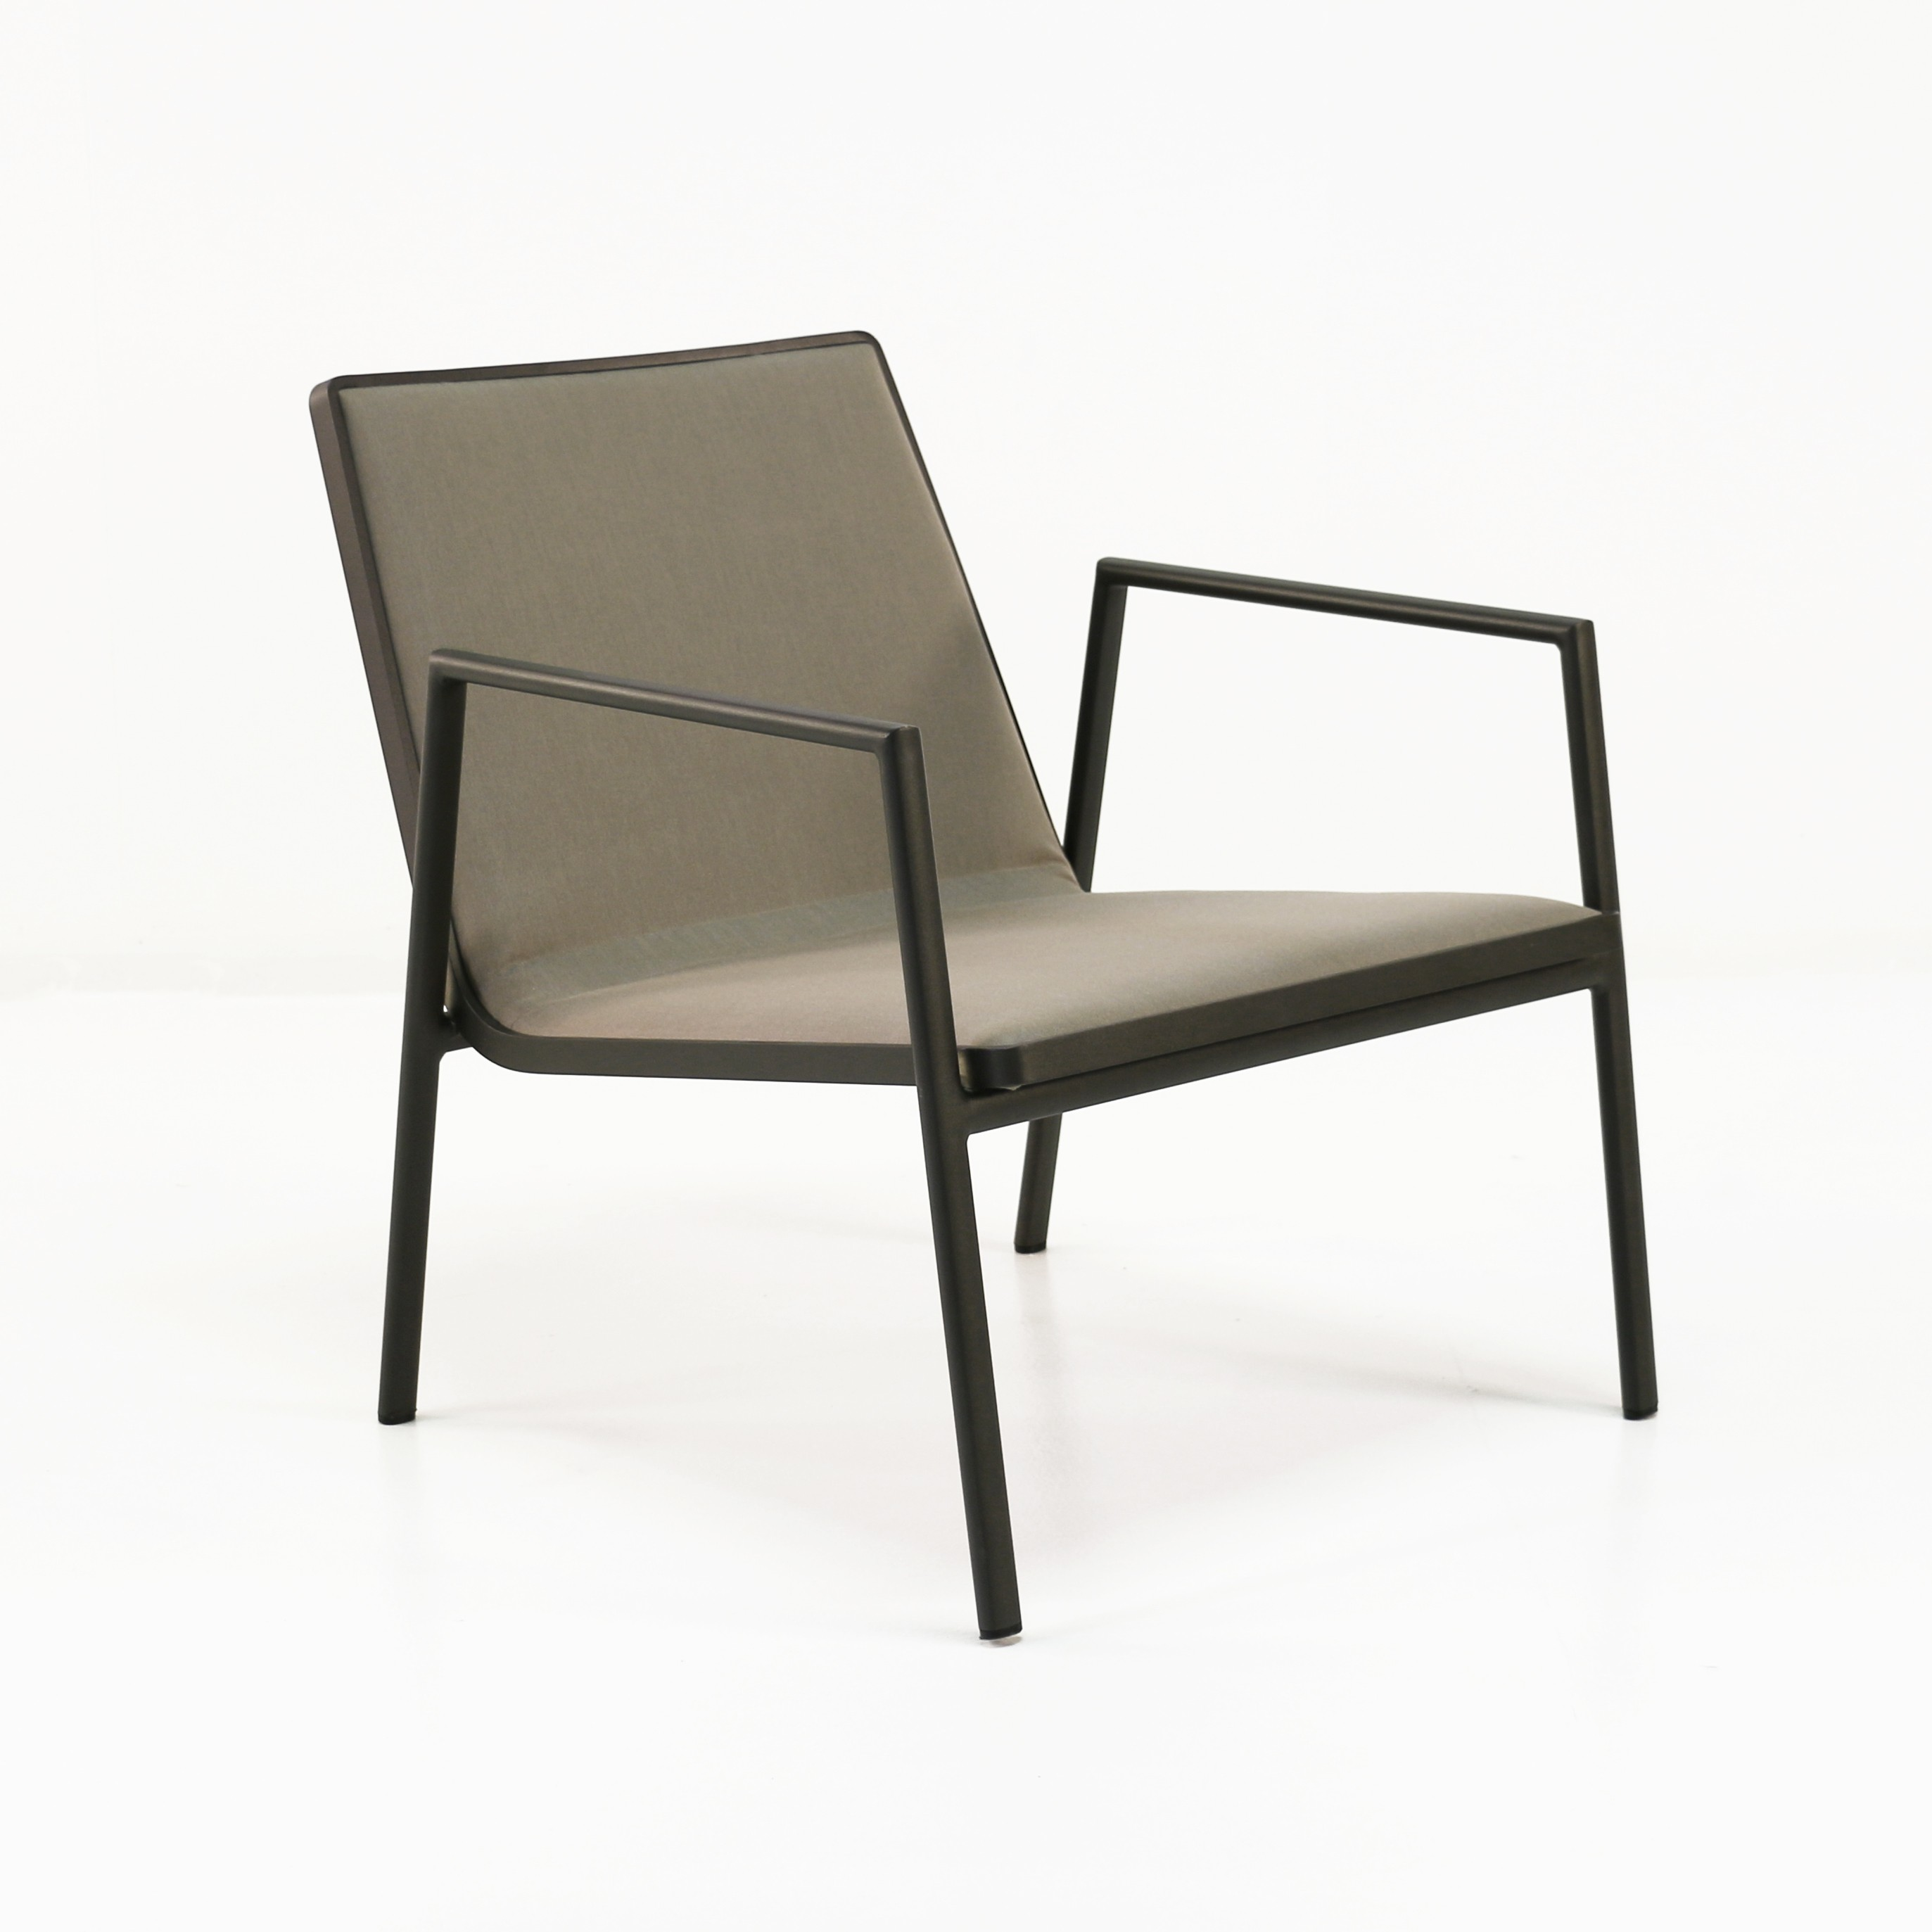 Outdoor Lounge Relaxing Chairs